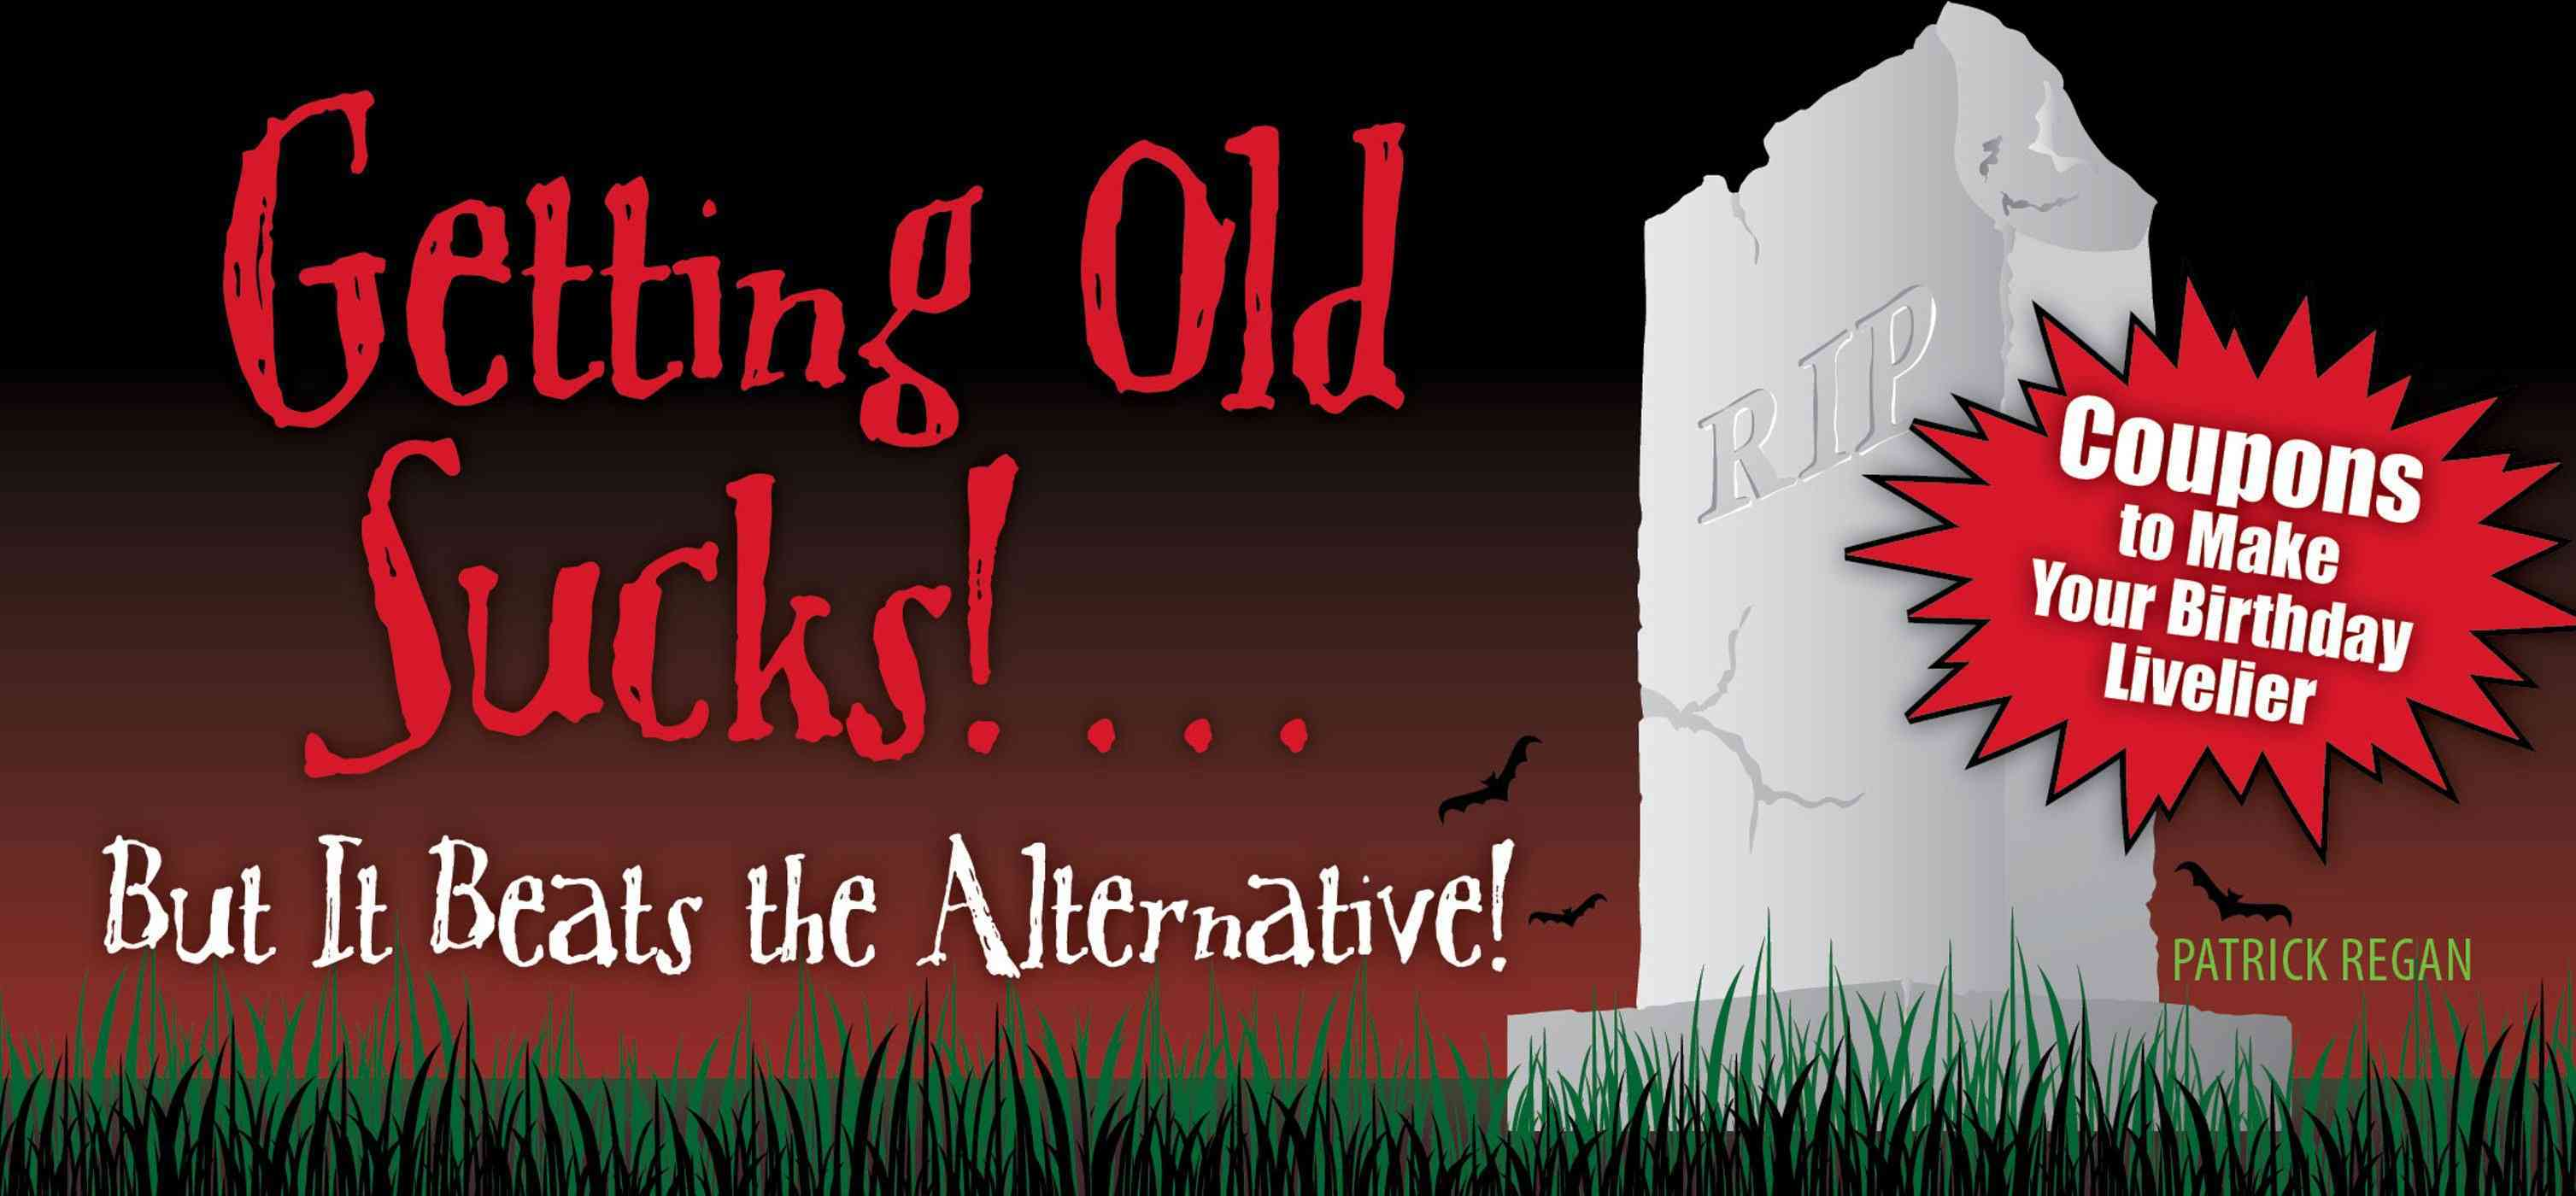 Getting Old Sucks!... But It Beats the Alternative!: Coupons to Make Your Birthday Livelier (Paperback)